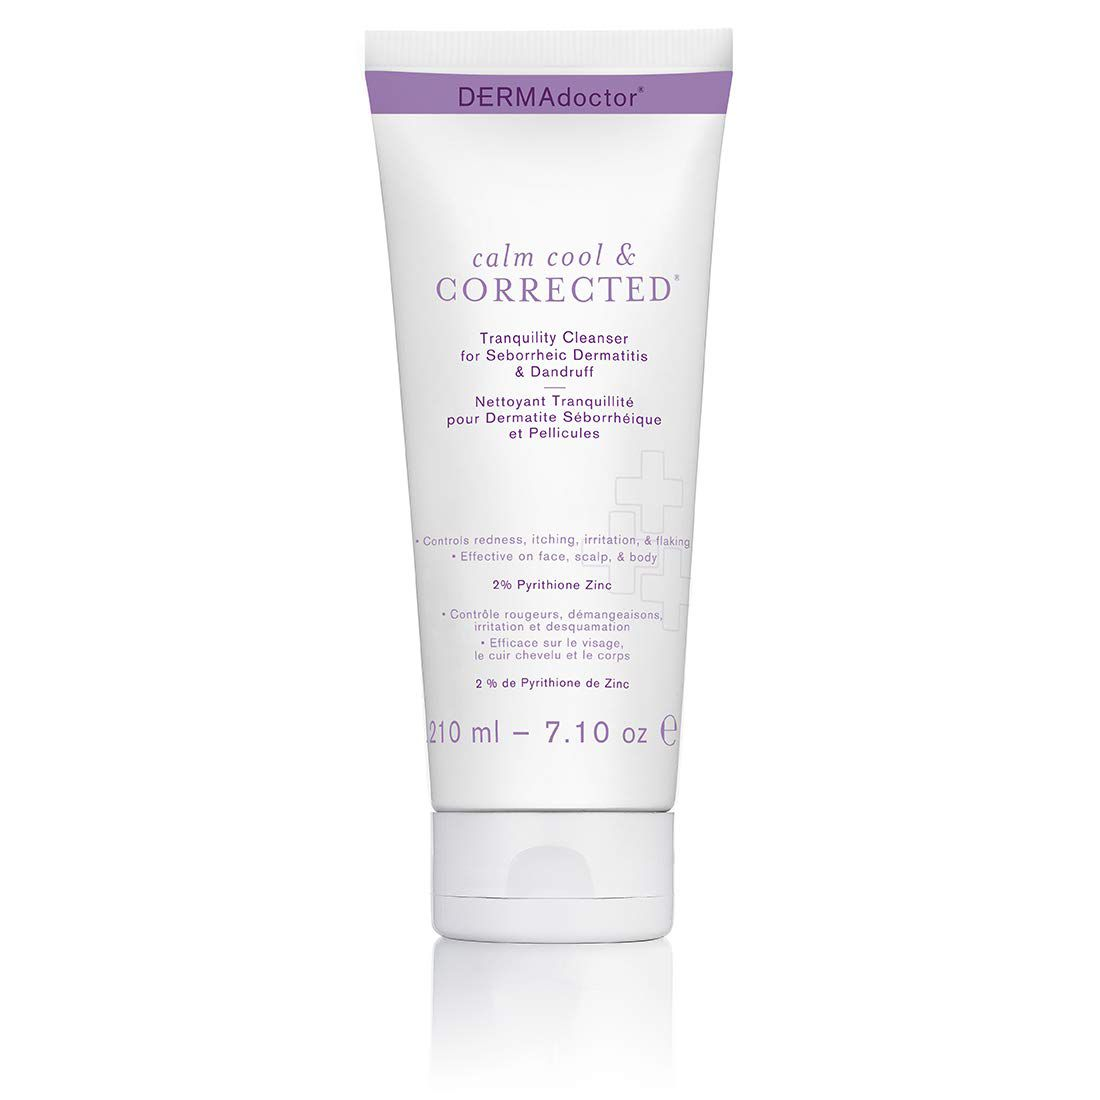 Calm, Cool & Corrected Calming Tranquility Cleanser